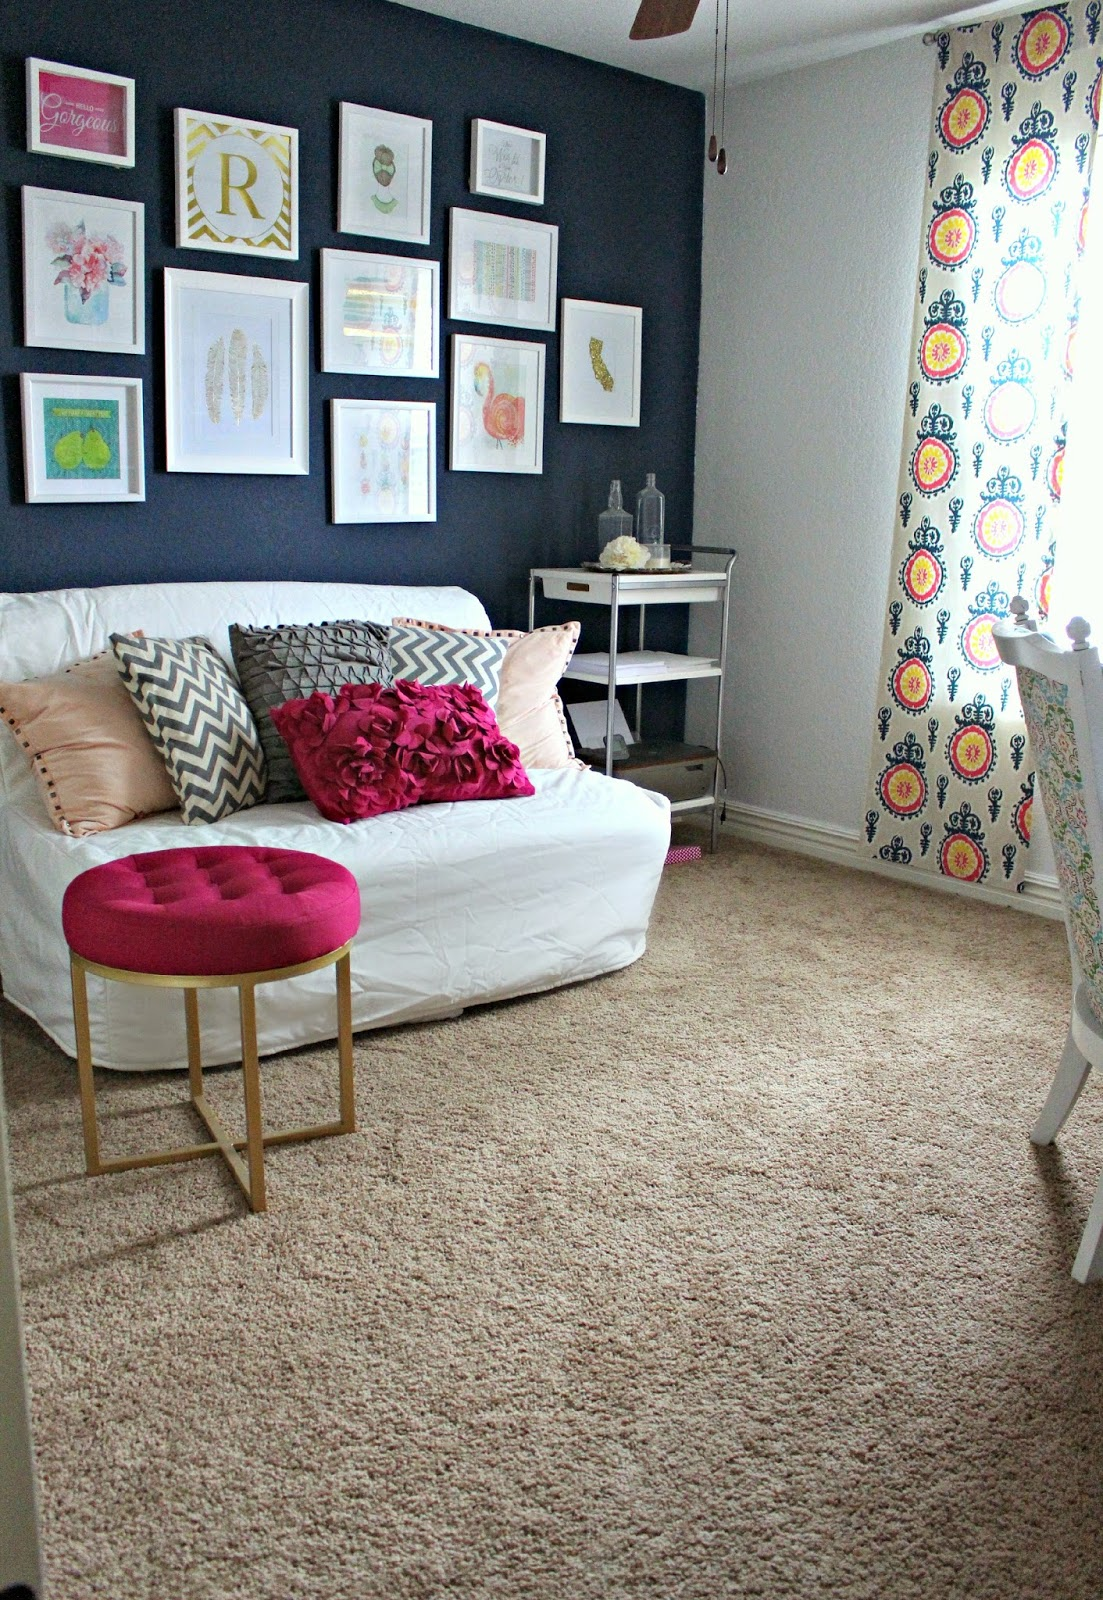 my girly officeguest room reveal - Modern Home Office Guest Room